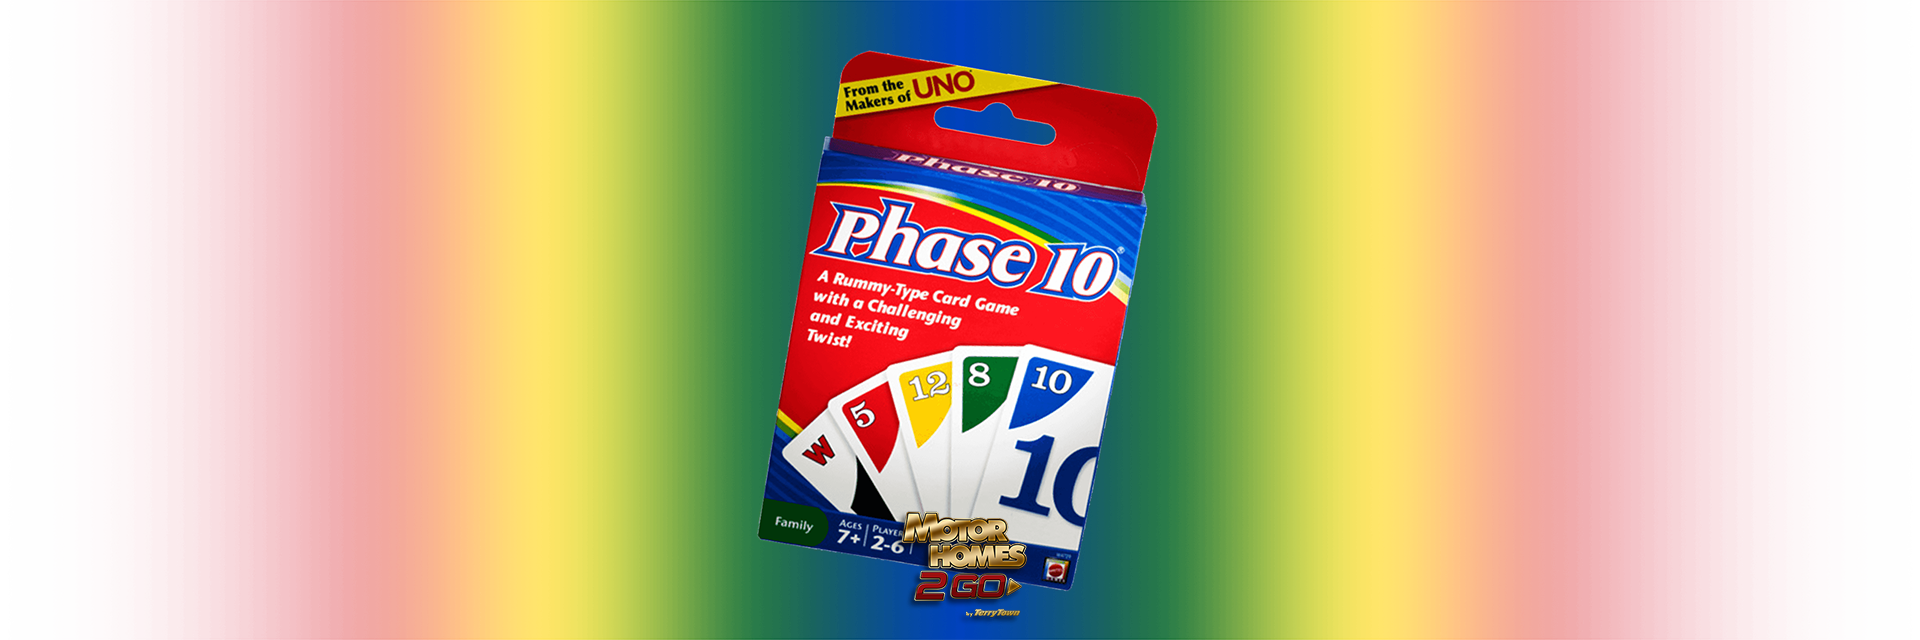 Phase 10 card game Banner